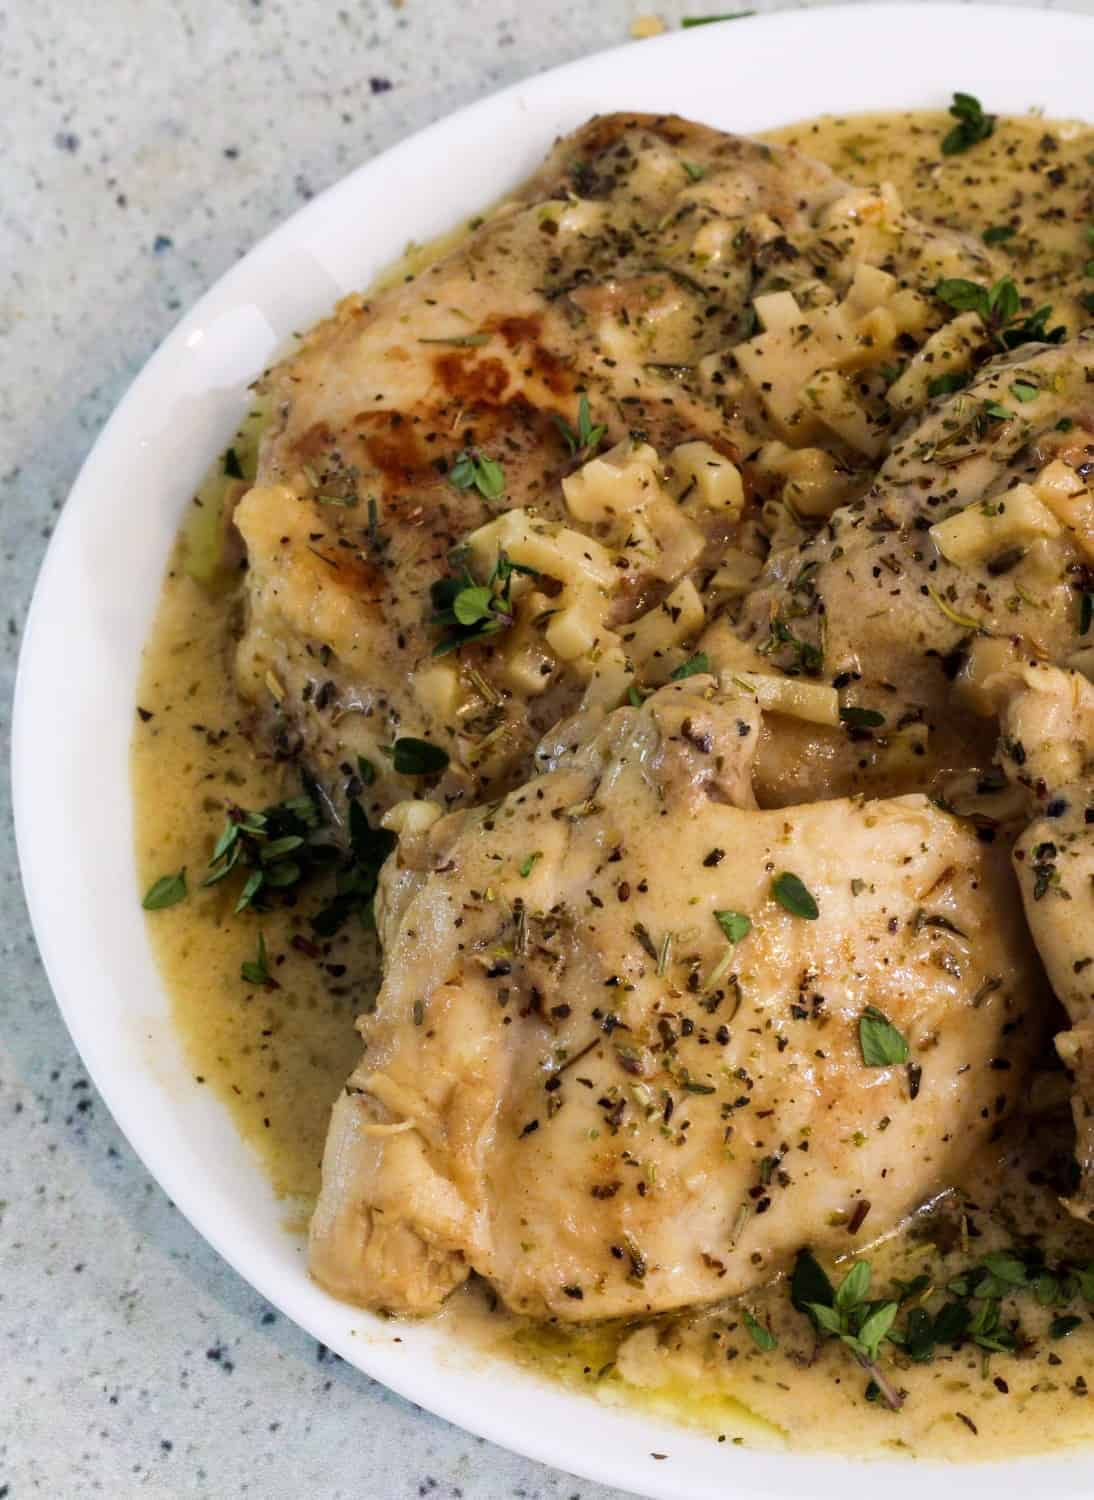 Low carb instant pot french garlic chicken from two sleevers